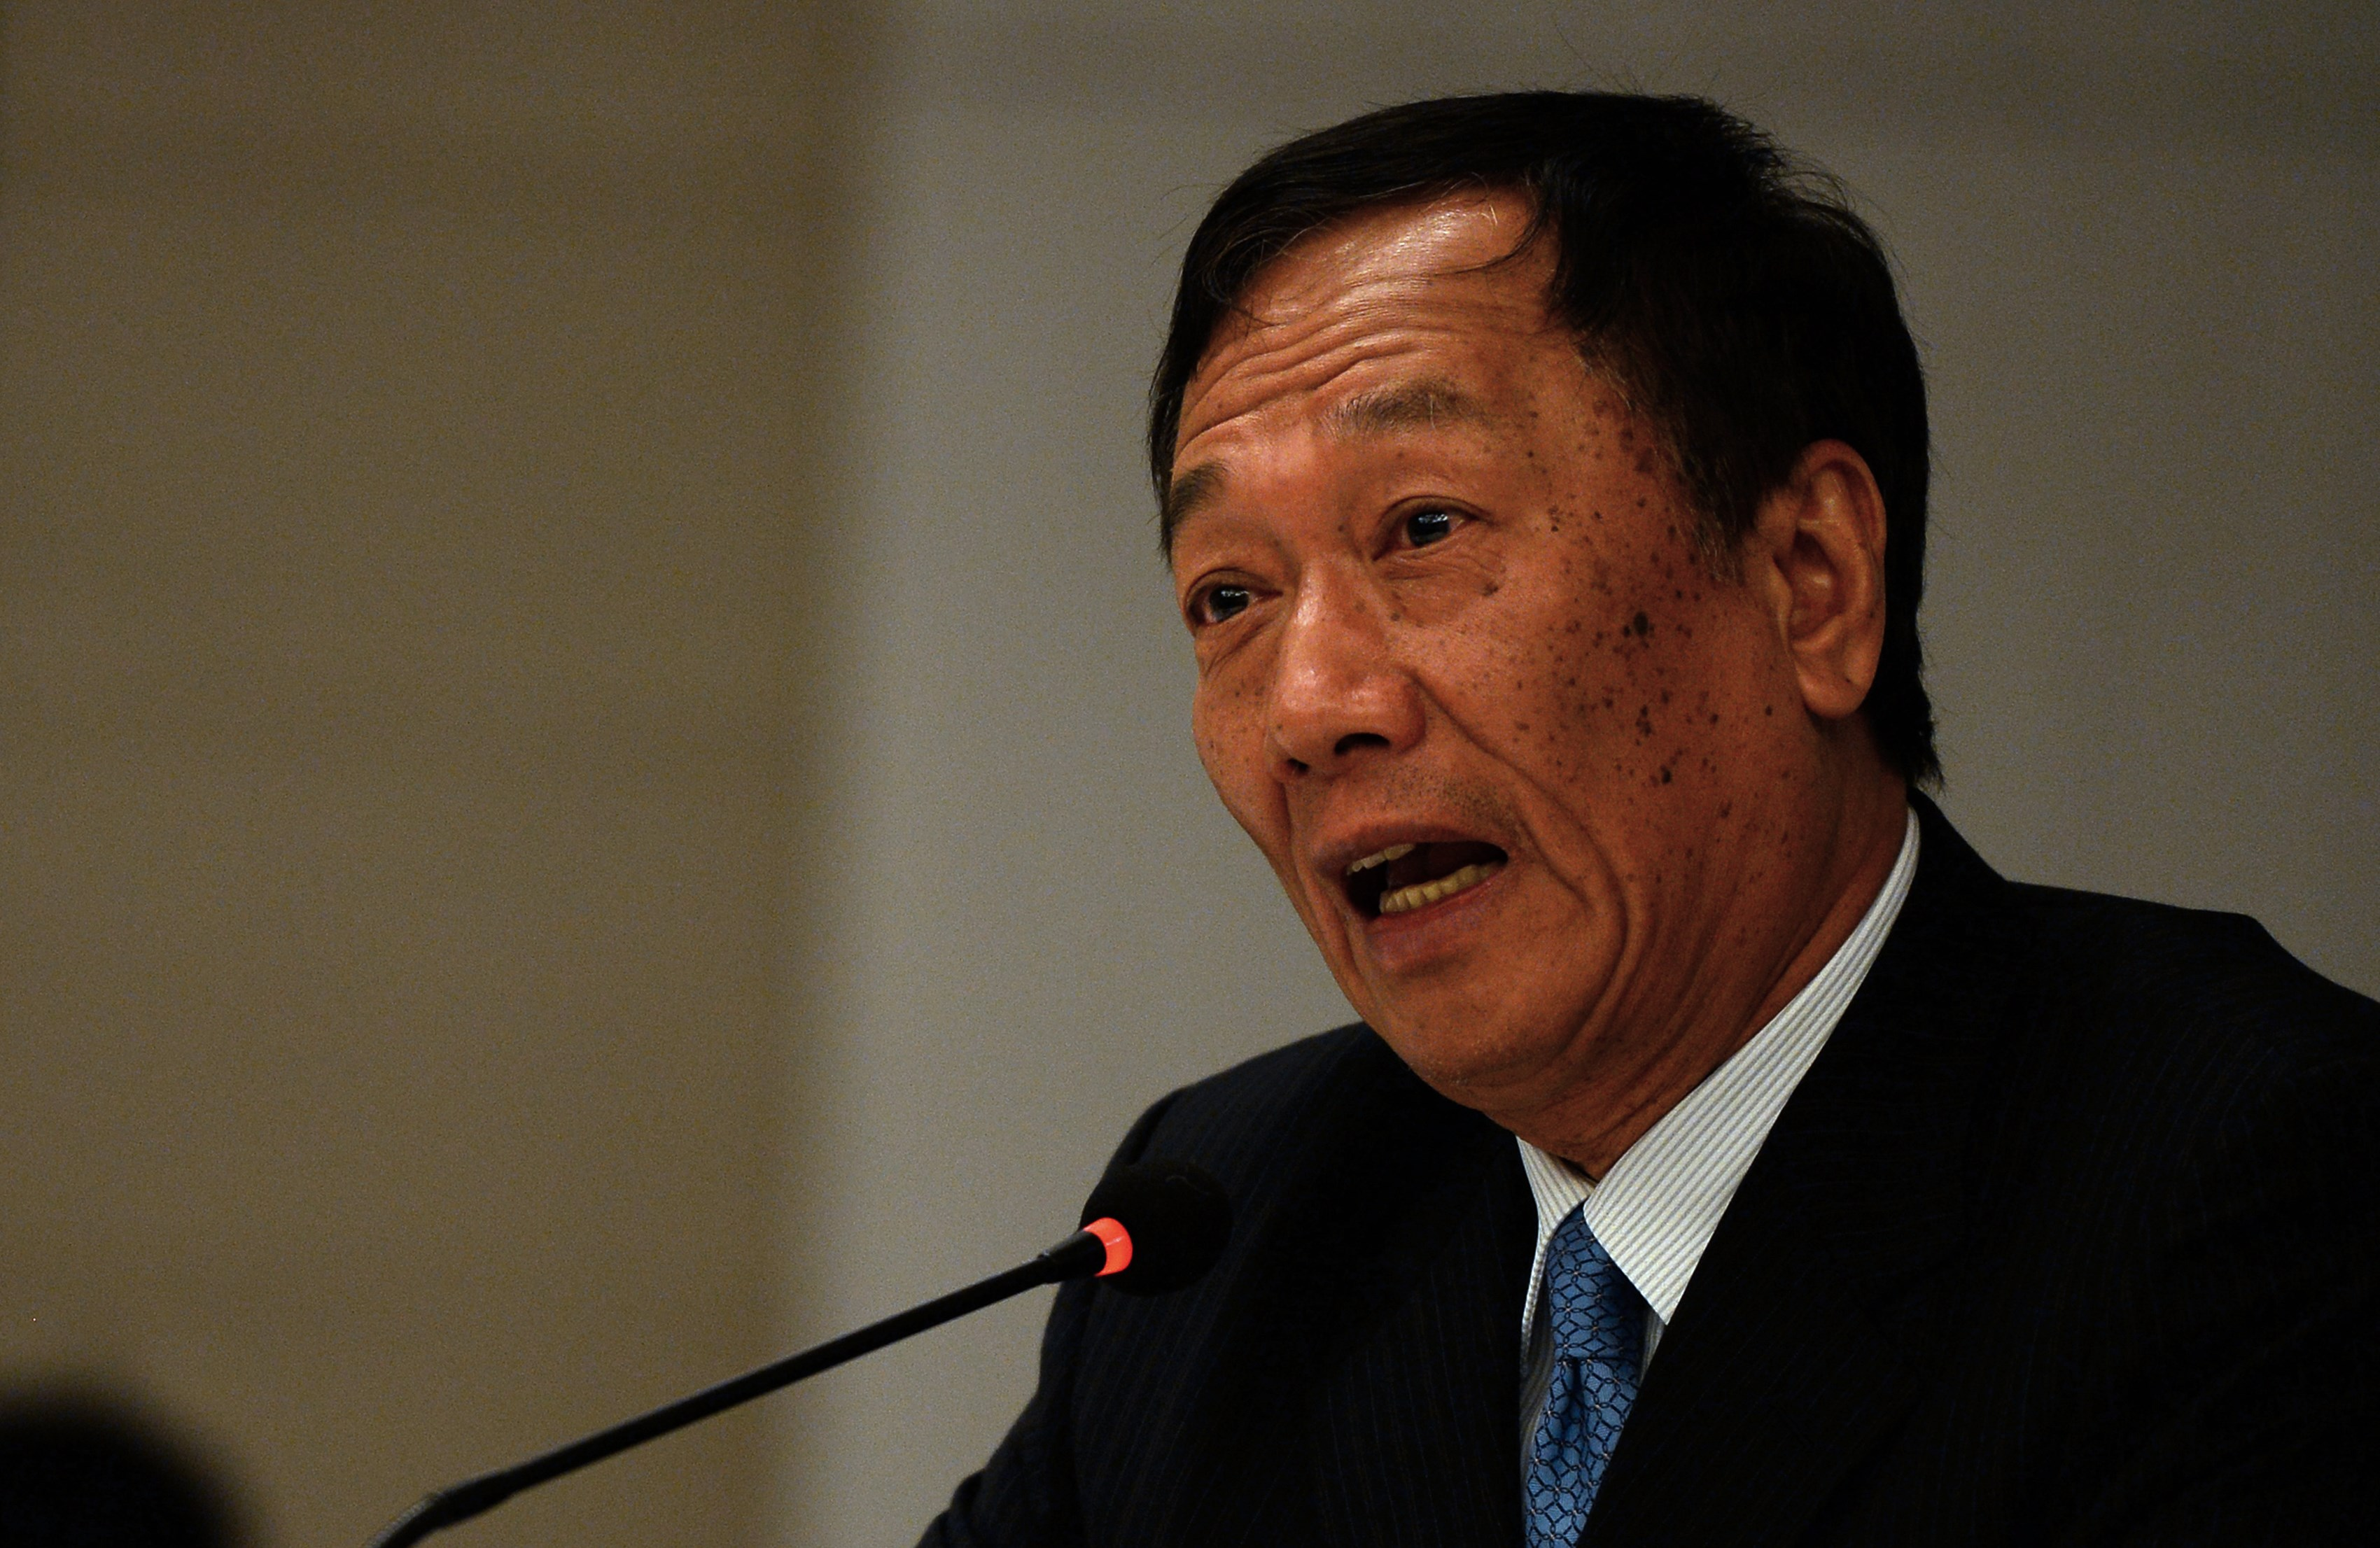 Chief Executive Officer of Taiwan-based electronics firm Foxconn Terry Gou addresses a press conference in New Delhi on Aug. 5, 2015.